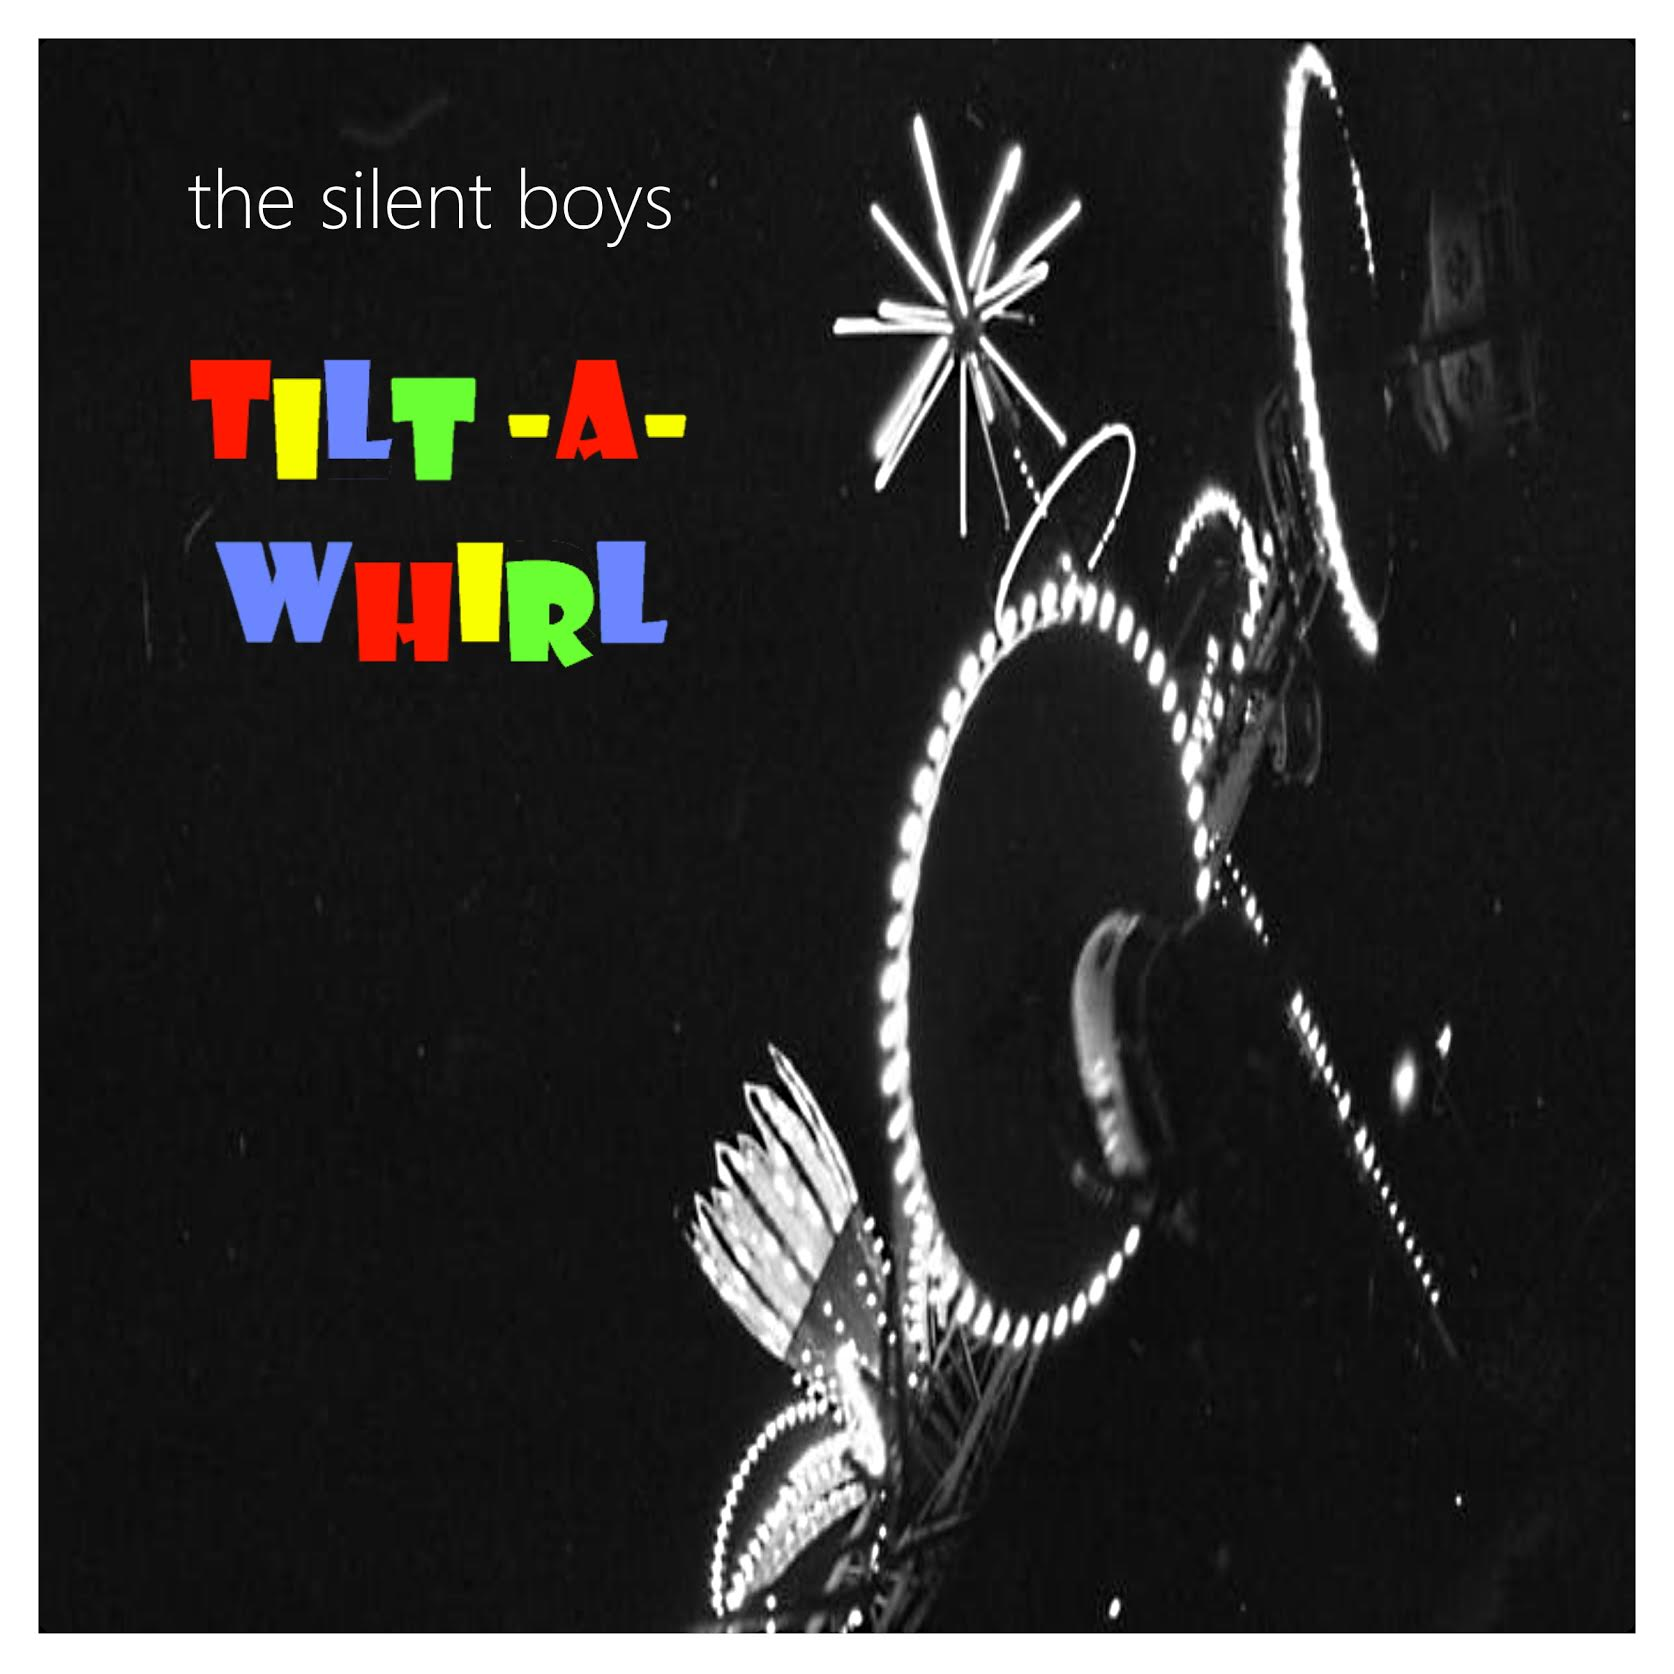 The Silent Boys' Tilt-A-Whirl: A Whimsical, Optimistic Album That Evokes The Spirit of 80s' Soft Rock